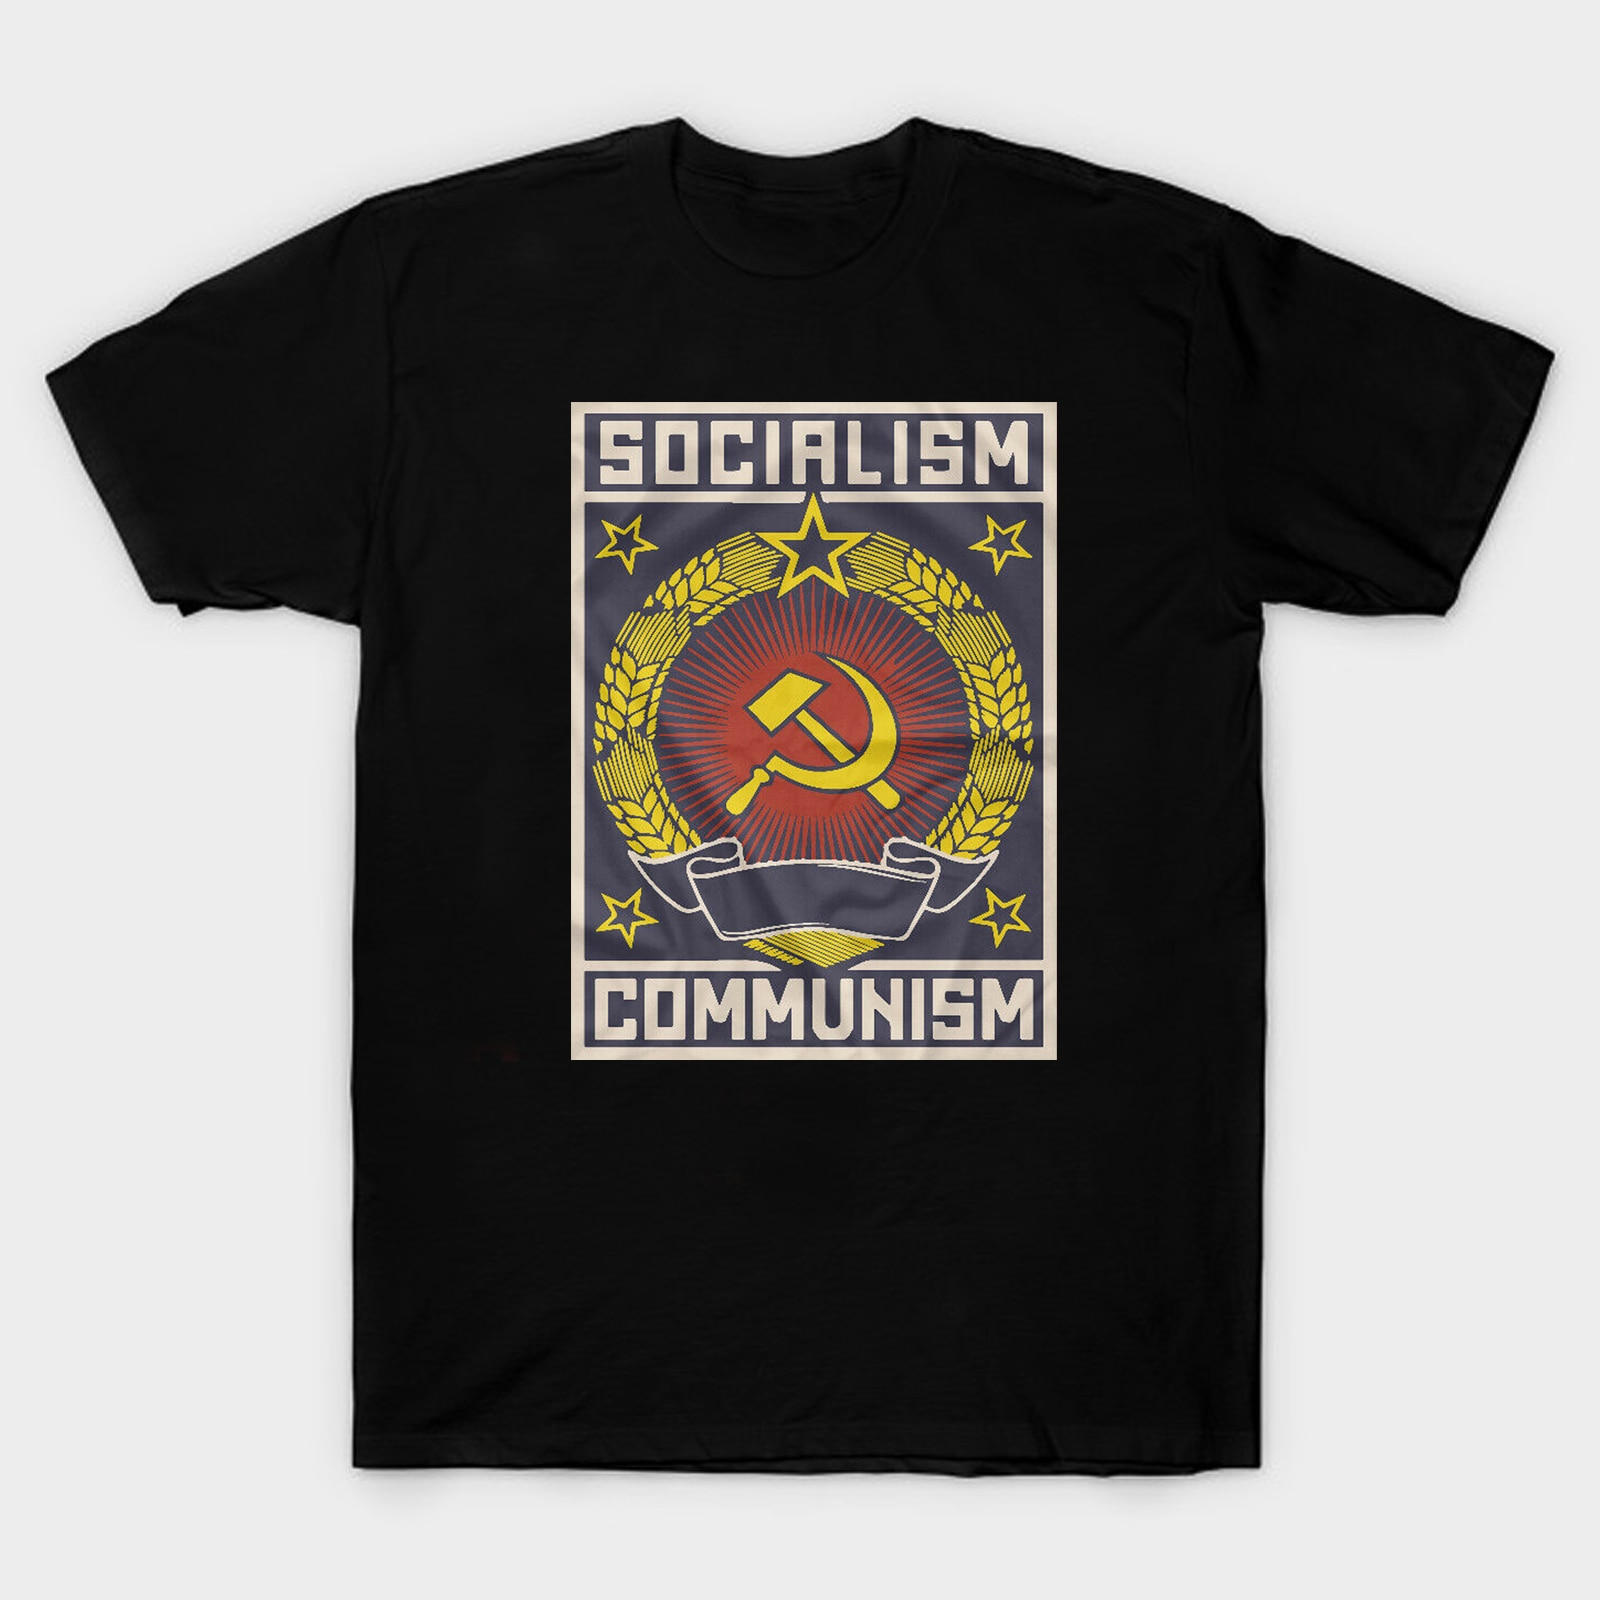 Soviet Union USSR CCCP Hammer and Sickle Socialism Communism T-Shirt. Summer Cotton Short Sleeve O-Neck Unisex T Shirt New S-3XL недорого